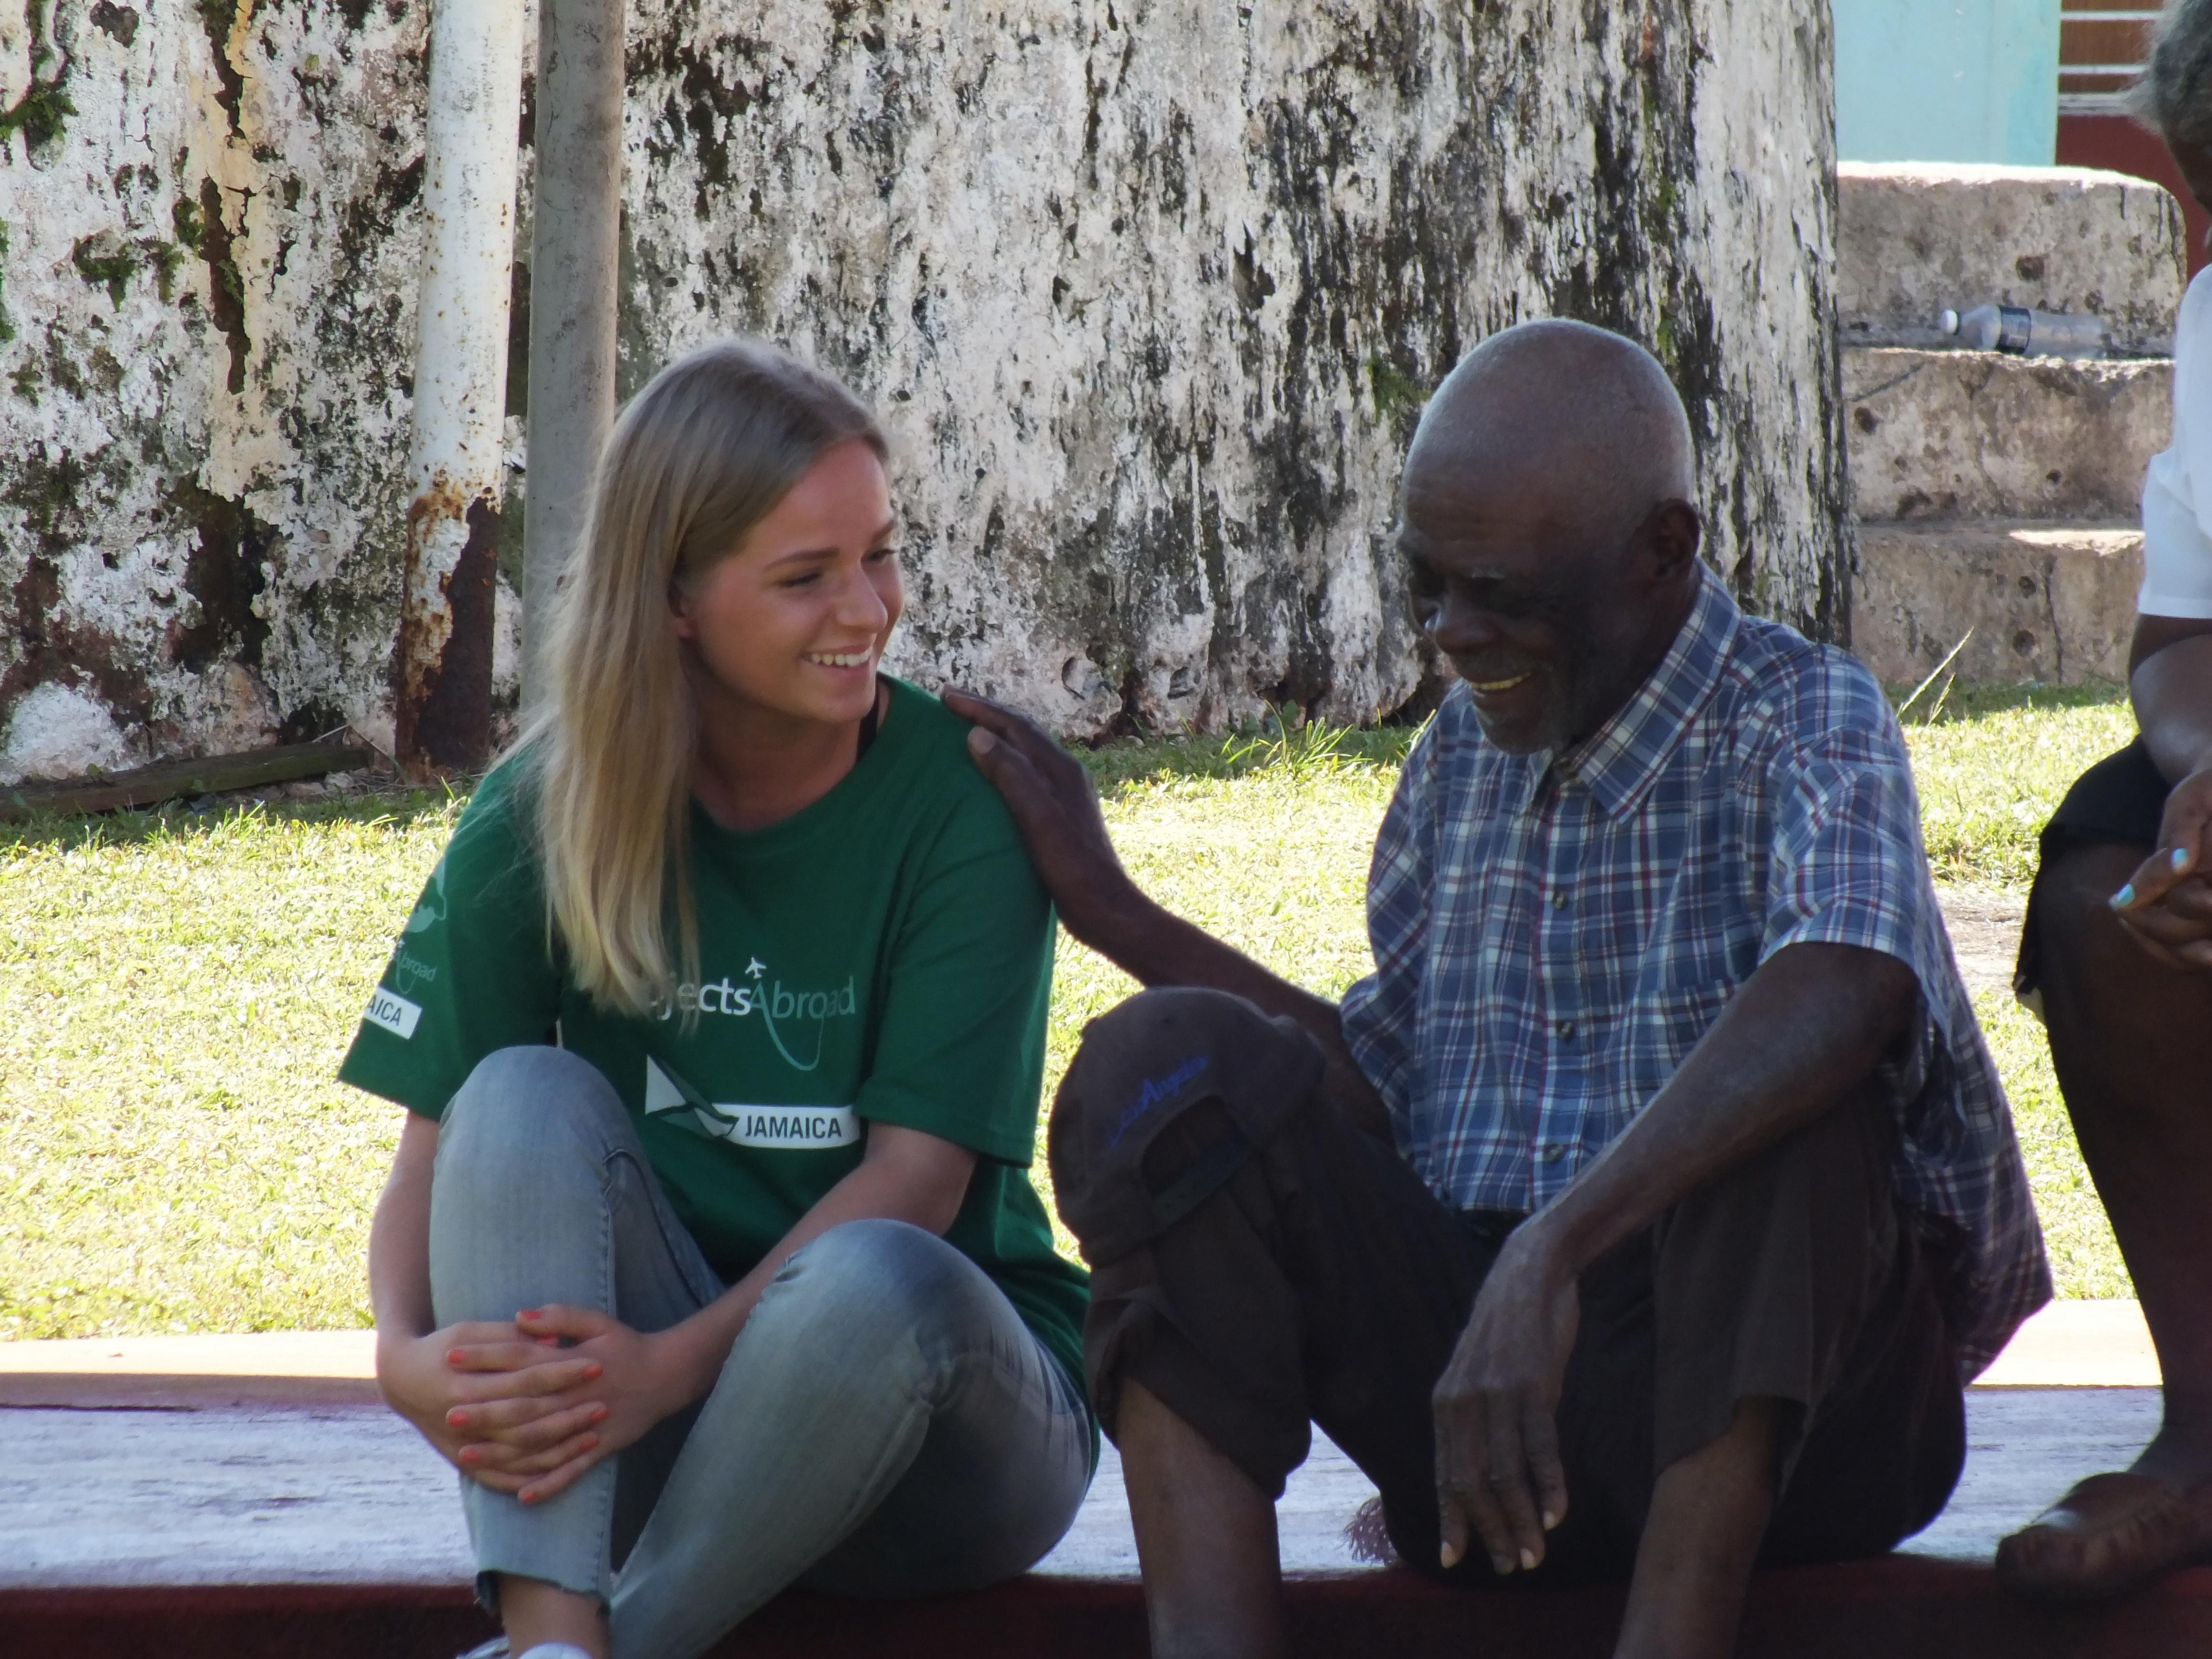 Projects Abroad Care volunteer speaks to a local man within the Community Outreach Day during Psychology placements in Jamaica.